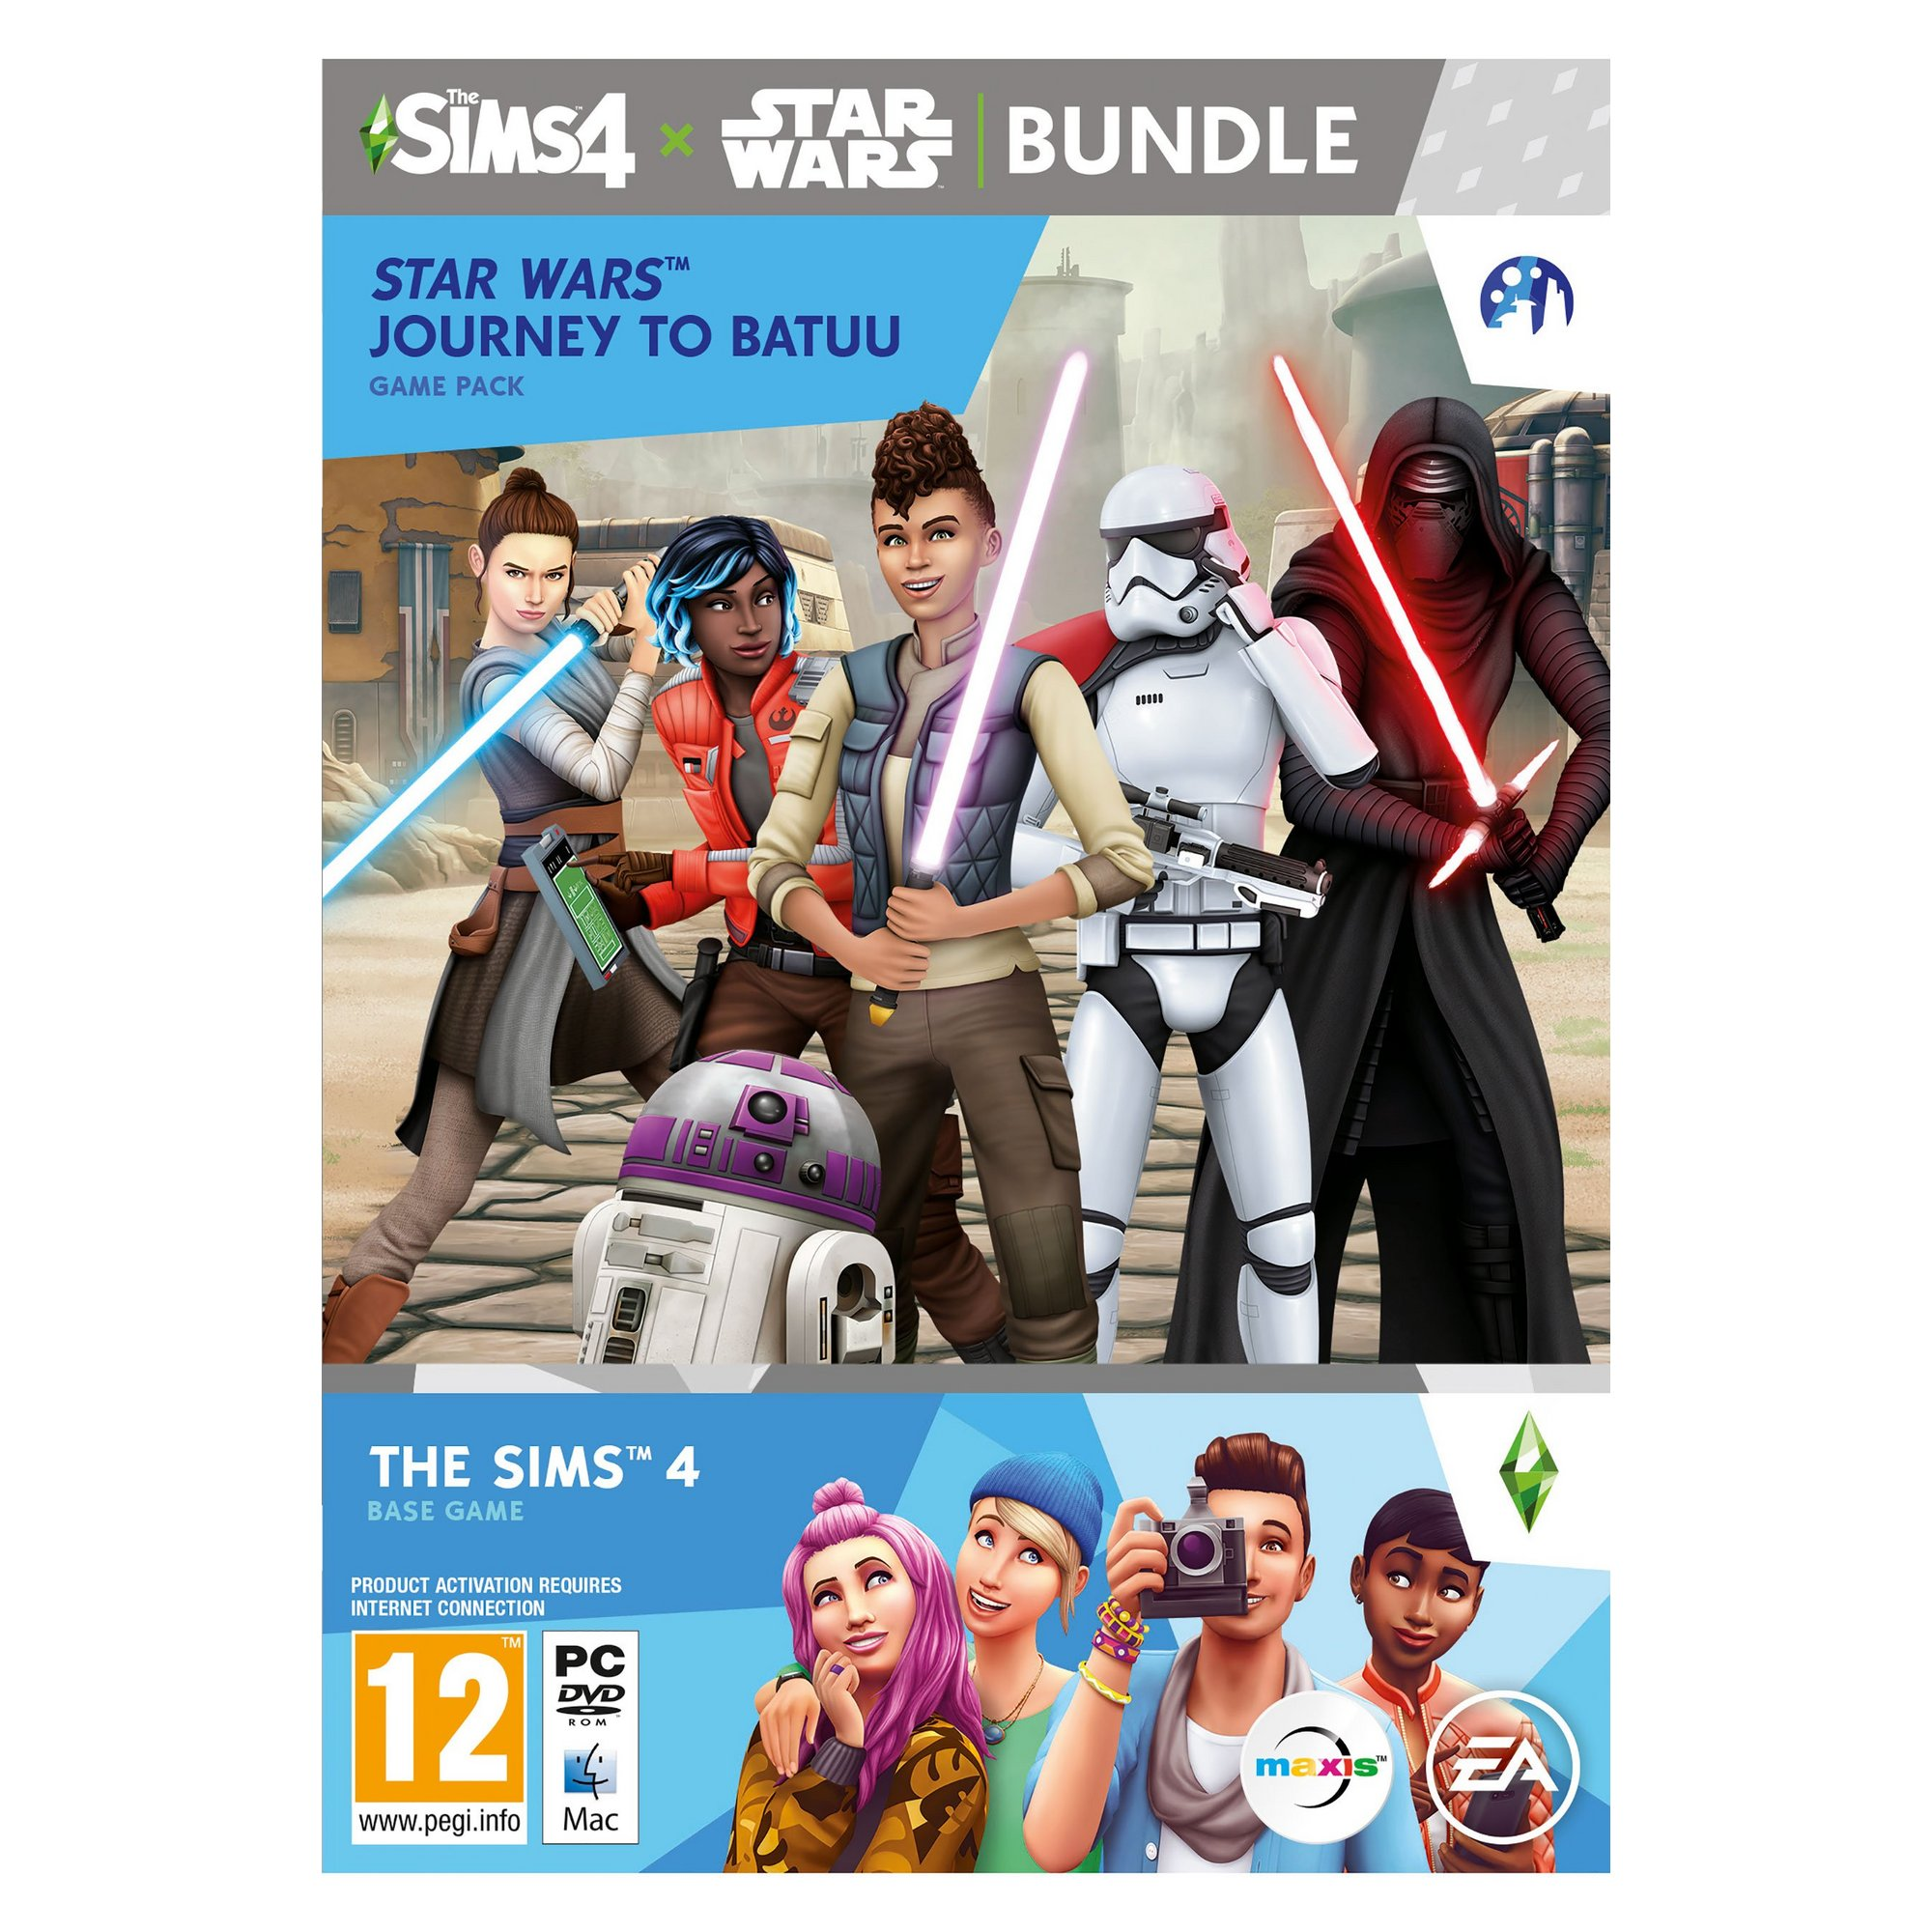 Image of PC: The Sims 4 Star Wars: Journey To Batuu: Base Game Pack Bundle